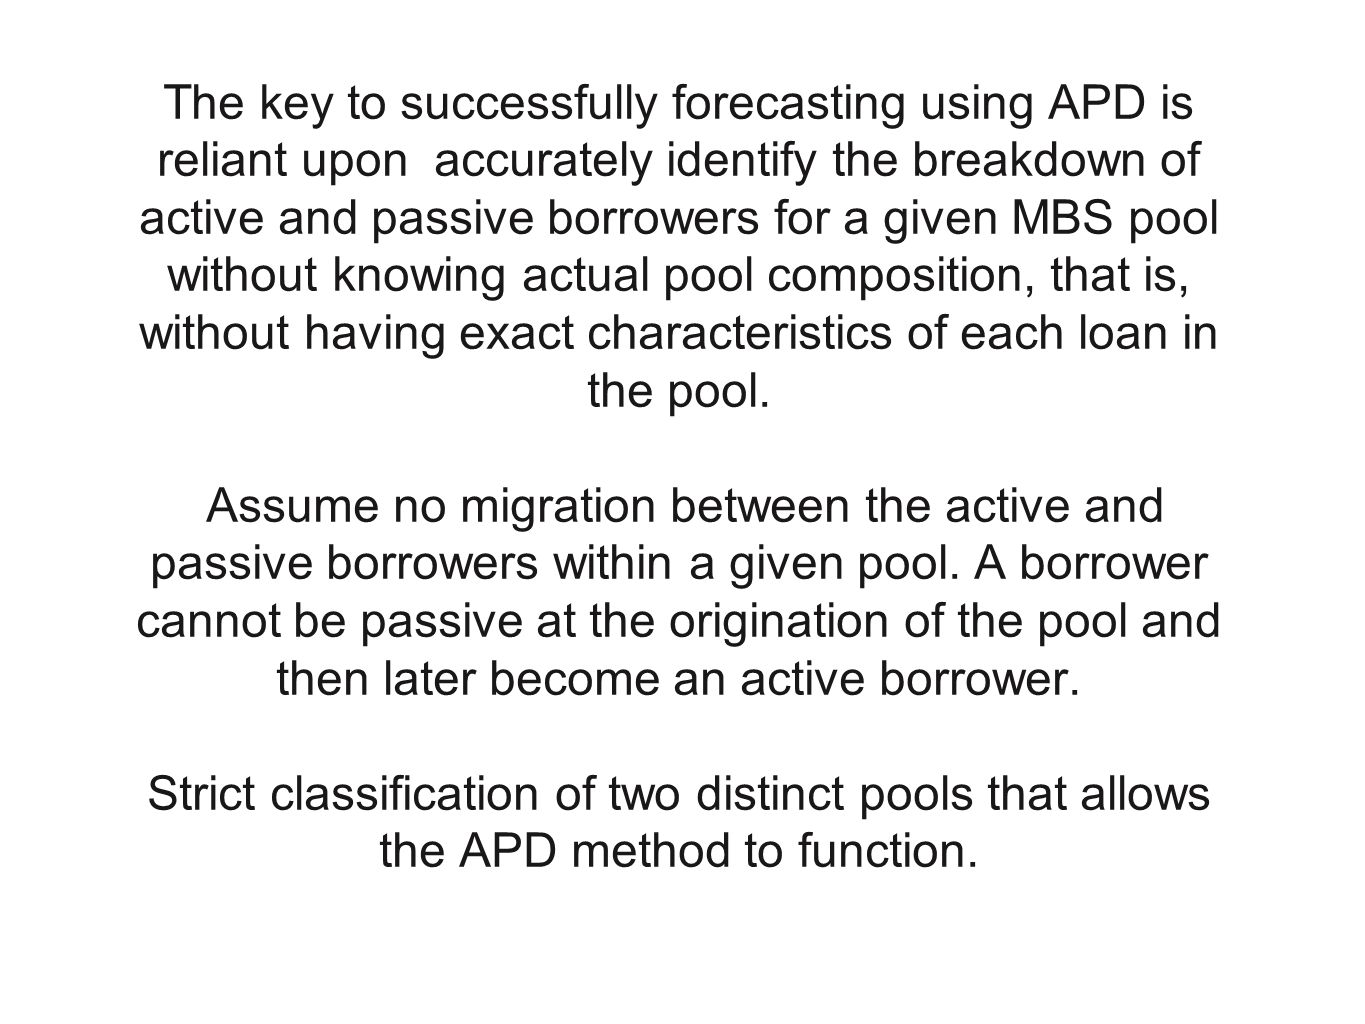 The key to successfully forecasting using APD is reliant upon accurately identify the breakdown of active and passive borrowers for a given MBS pool w